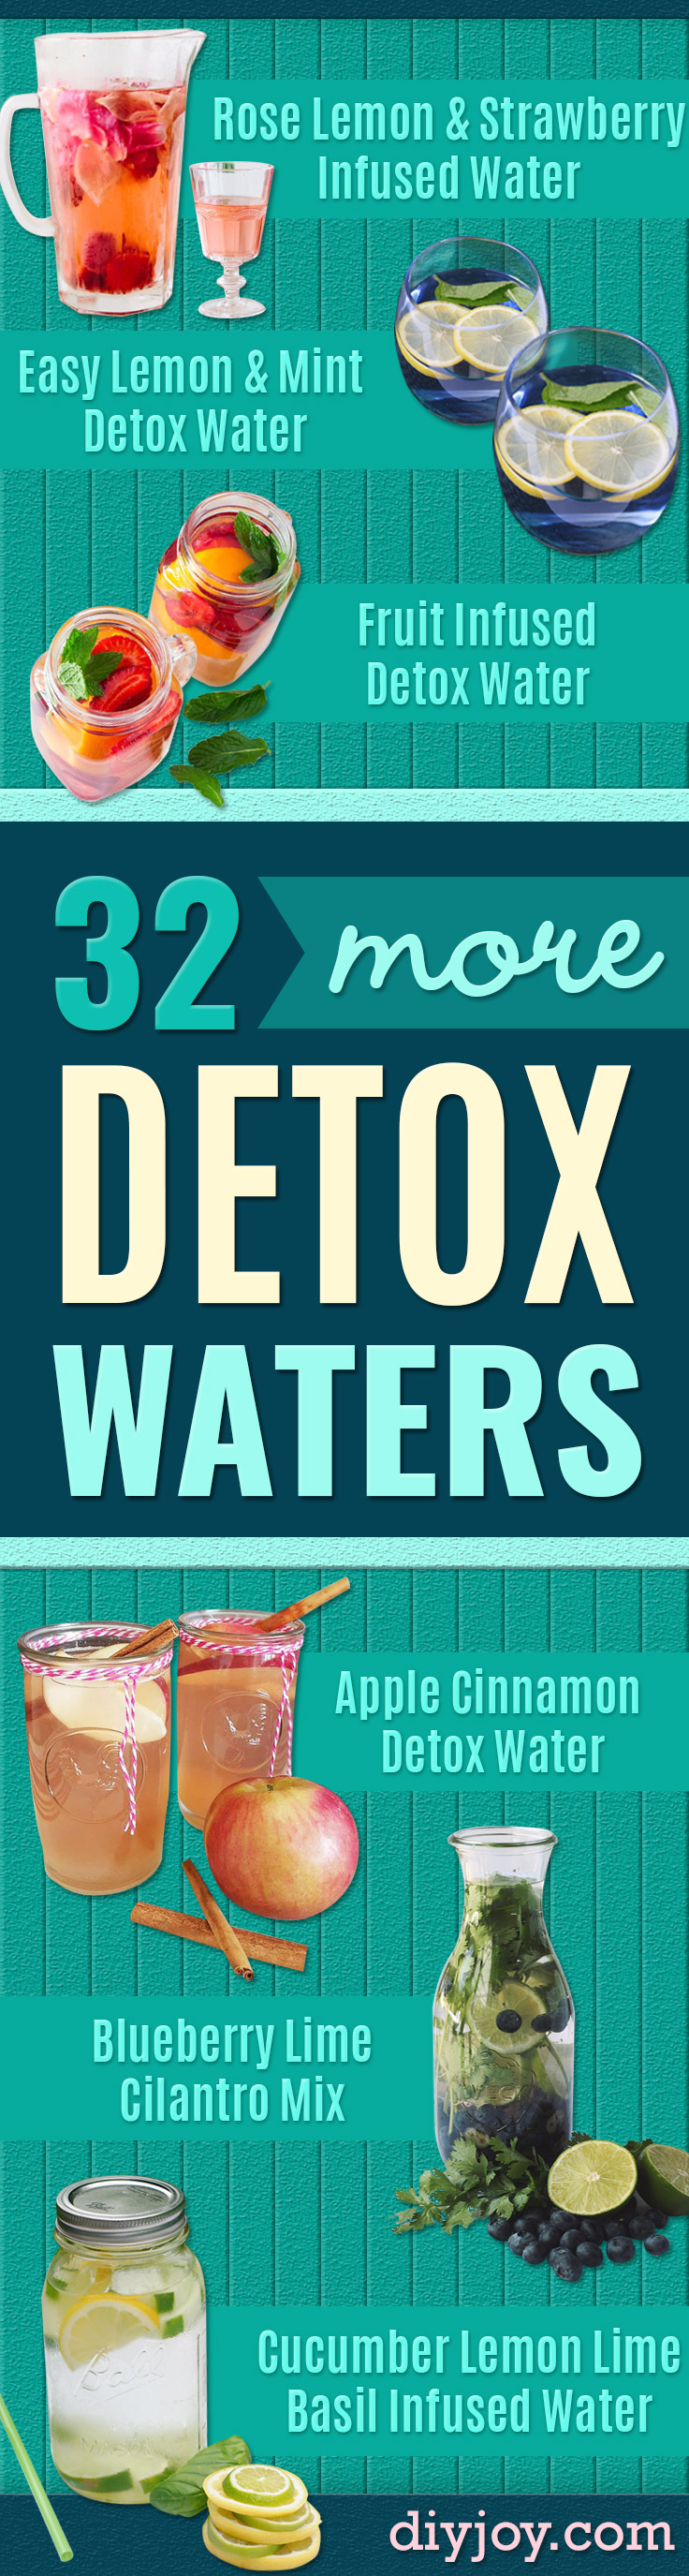 DIY Detox Water Recipes - Easy Recipe Ideas for Detox Waters to Lose Weight, Promote Healthy Skin and Body